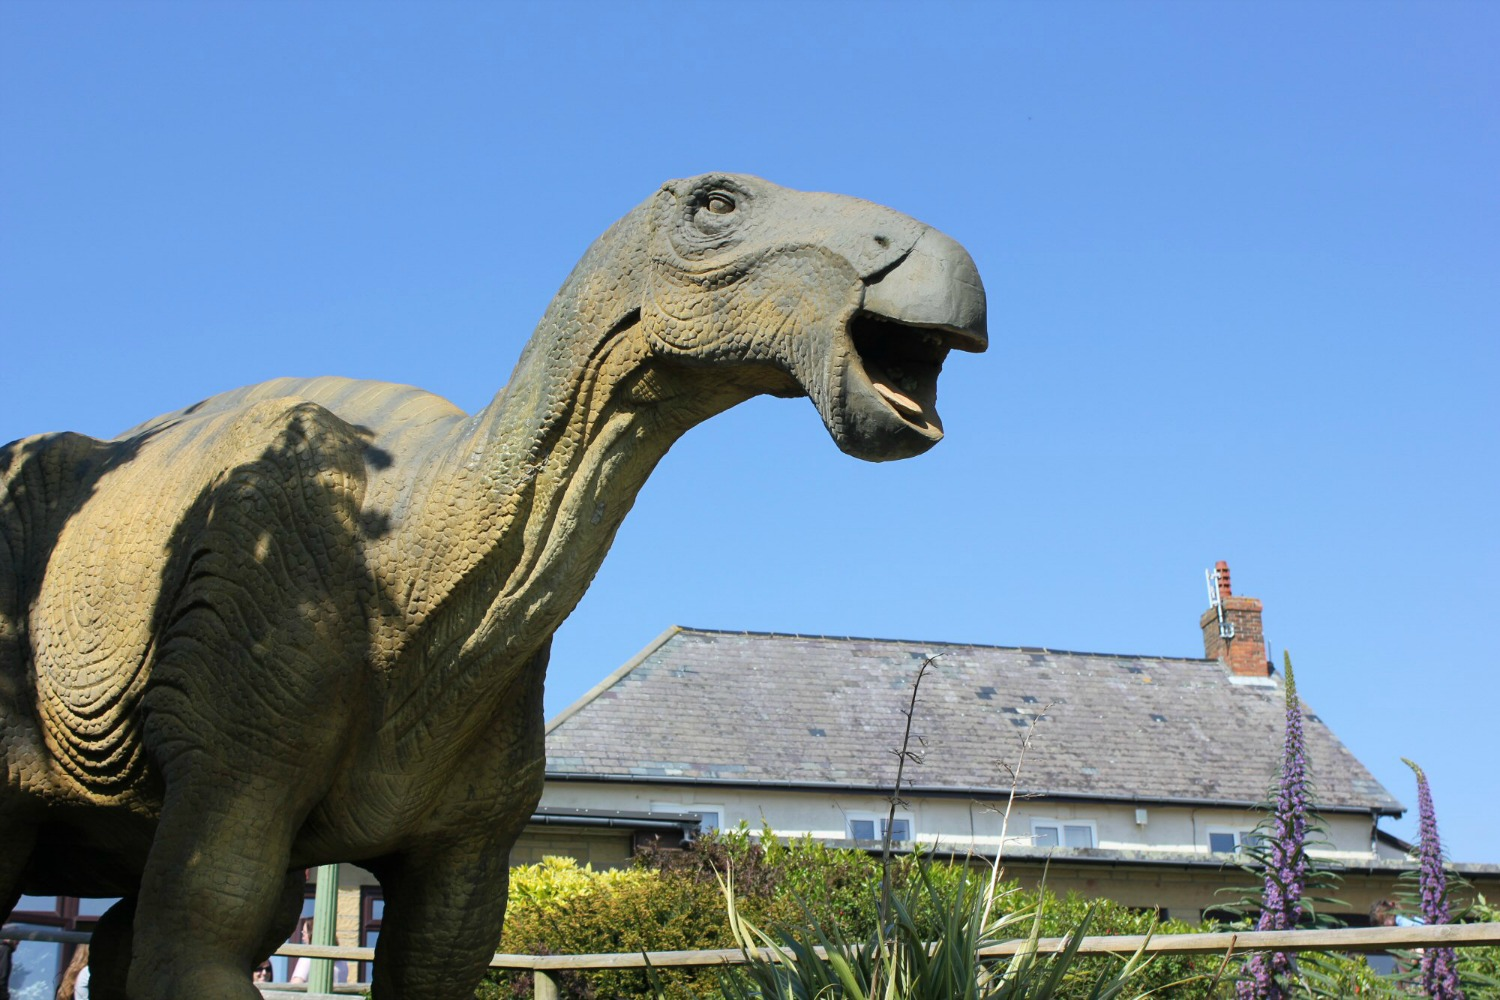 One of the animatronic dinosaurs at Blackgang Chine - hunting the Isle of Wight dinosaurs